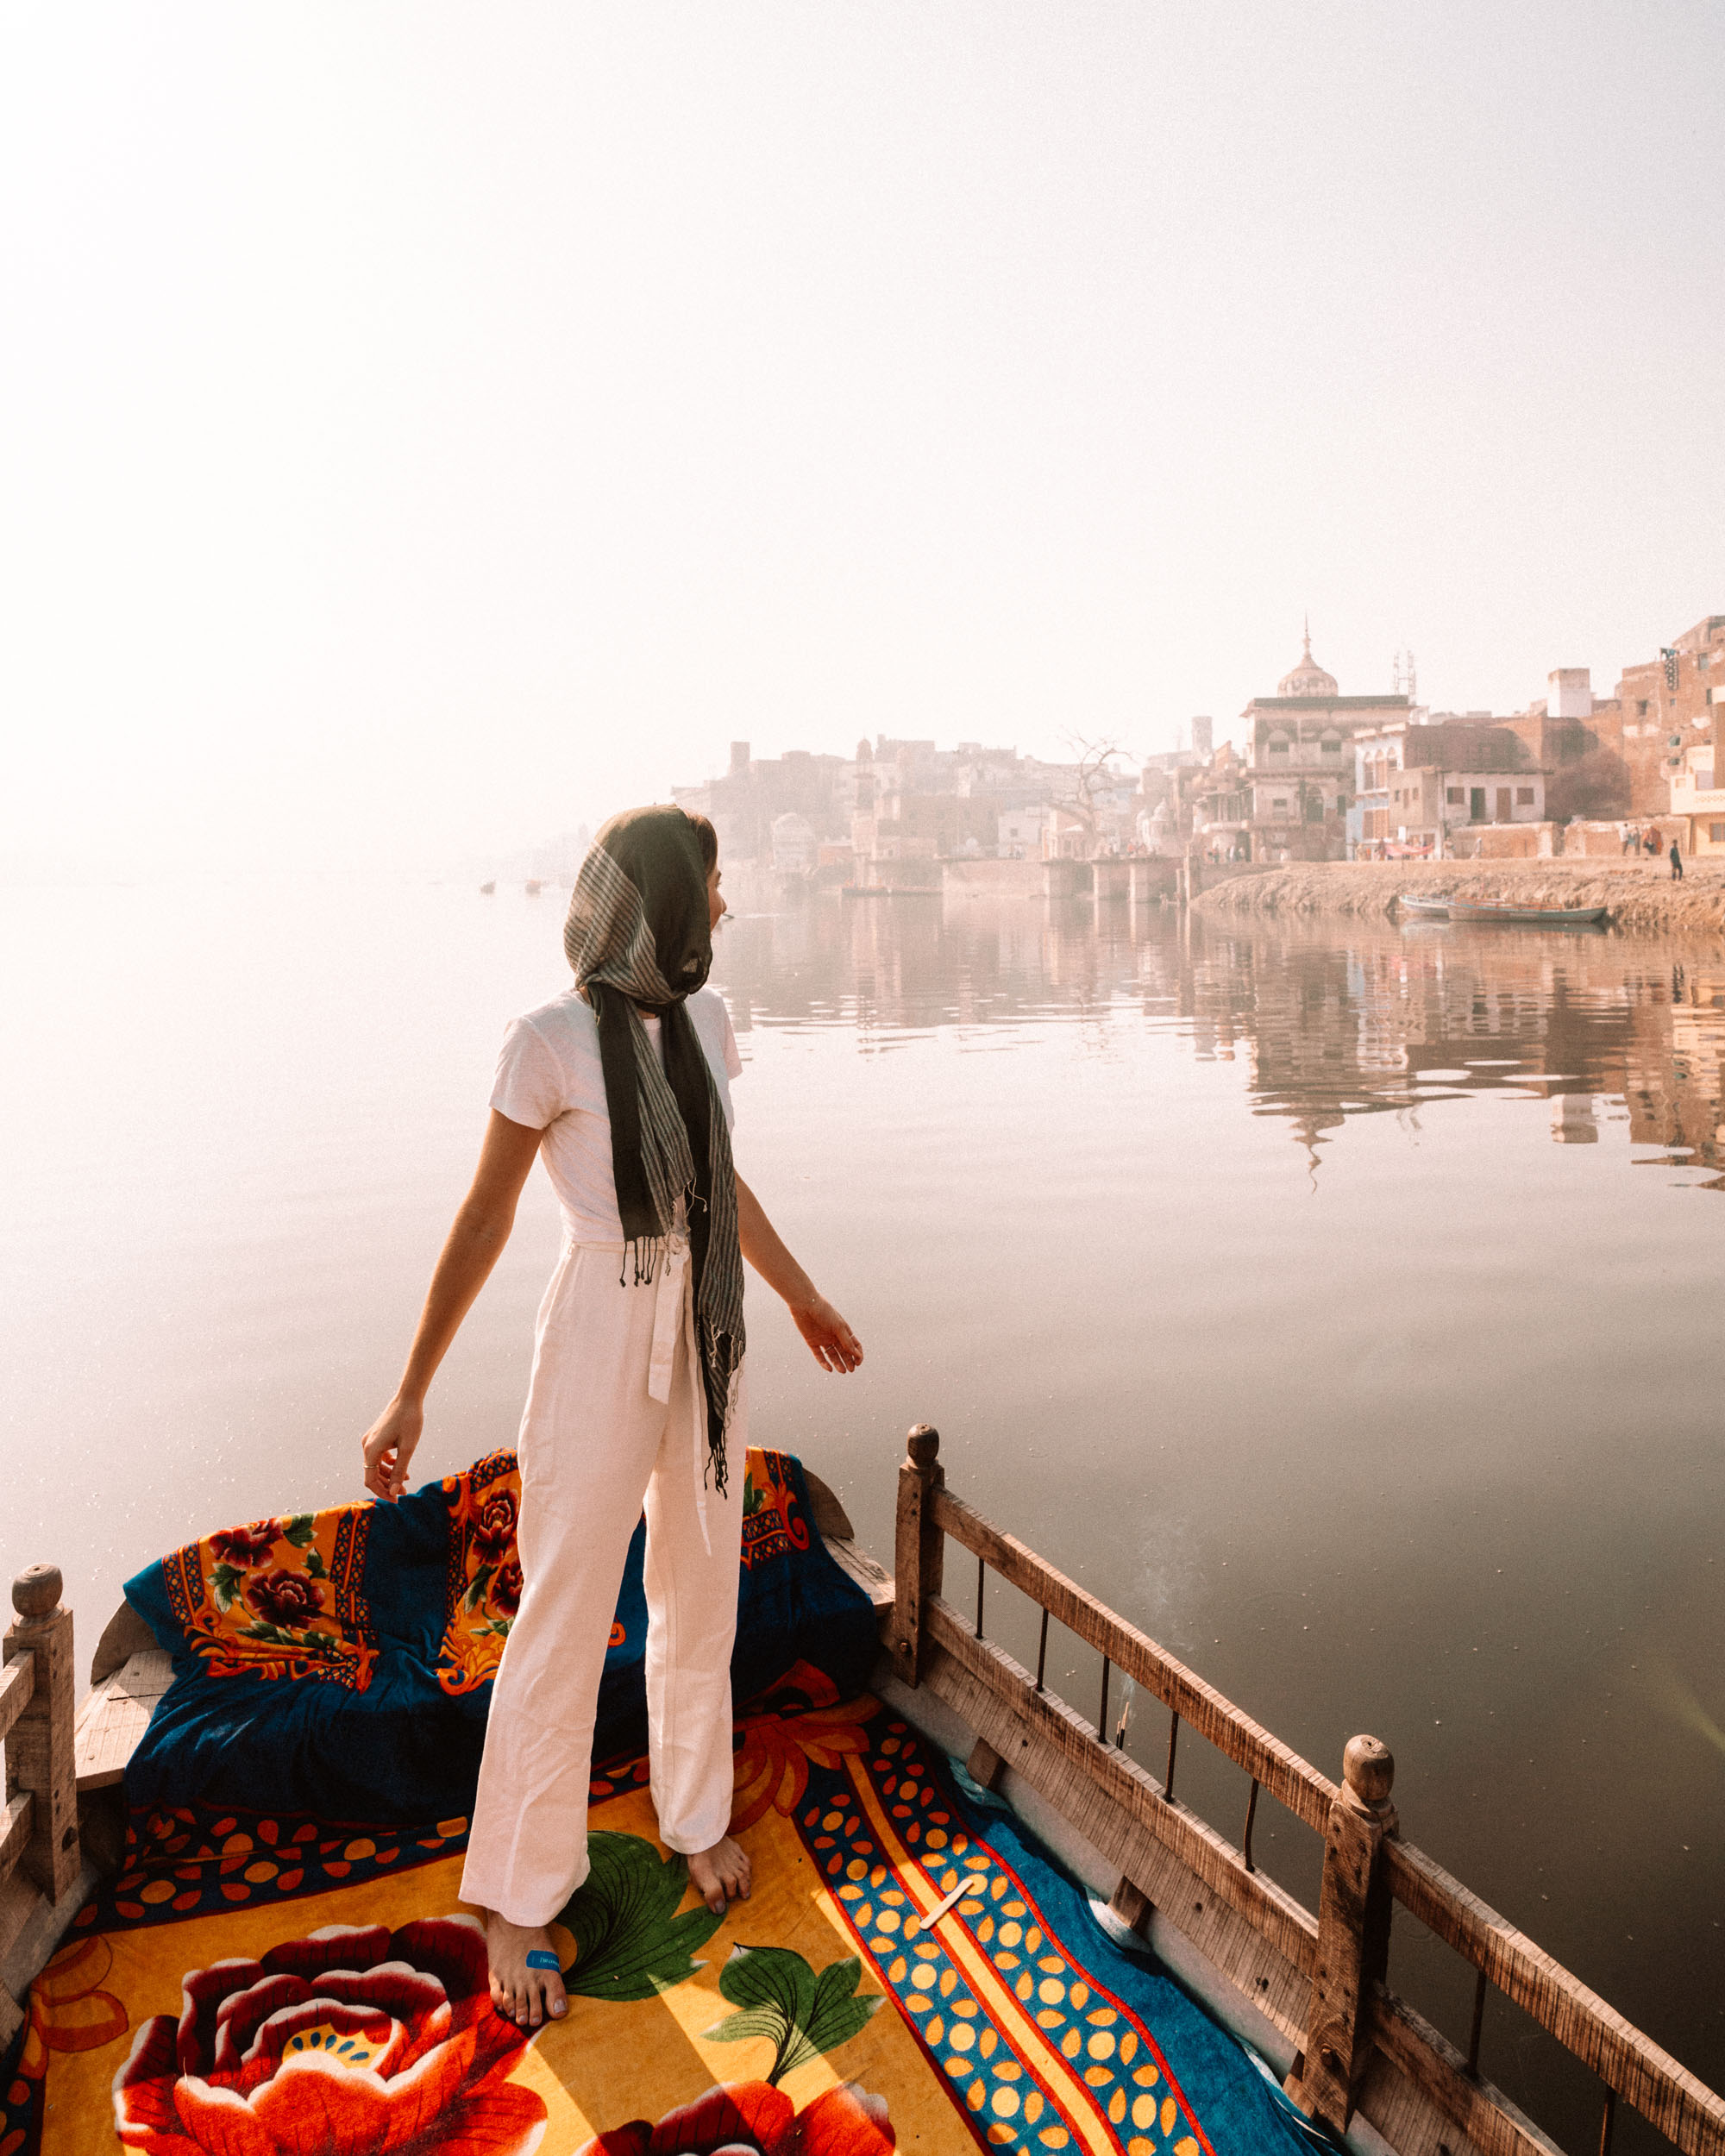 Woman on boat looking at the riverbank of Mathura, India via @finduslost